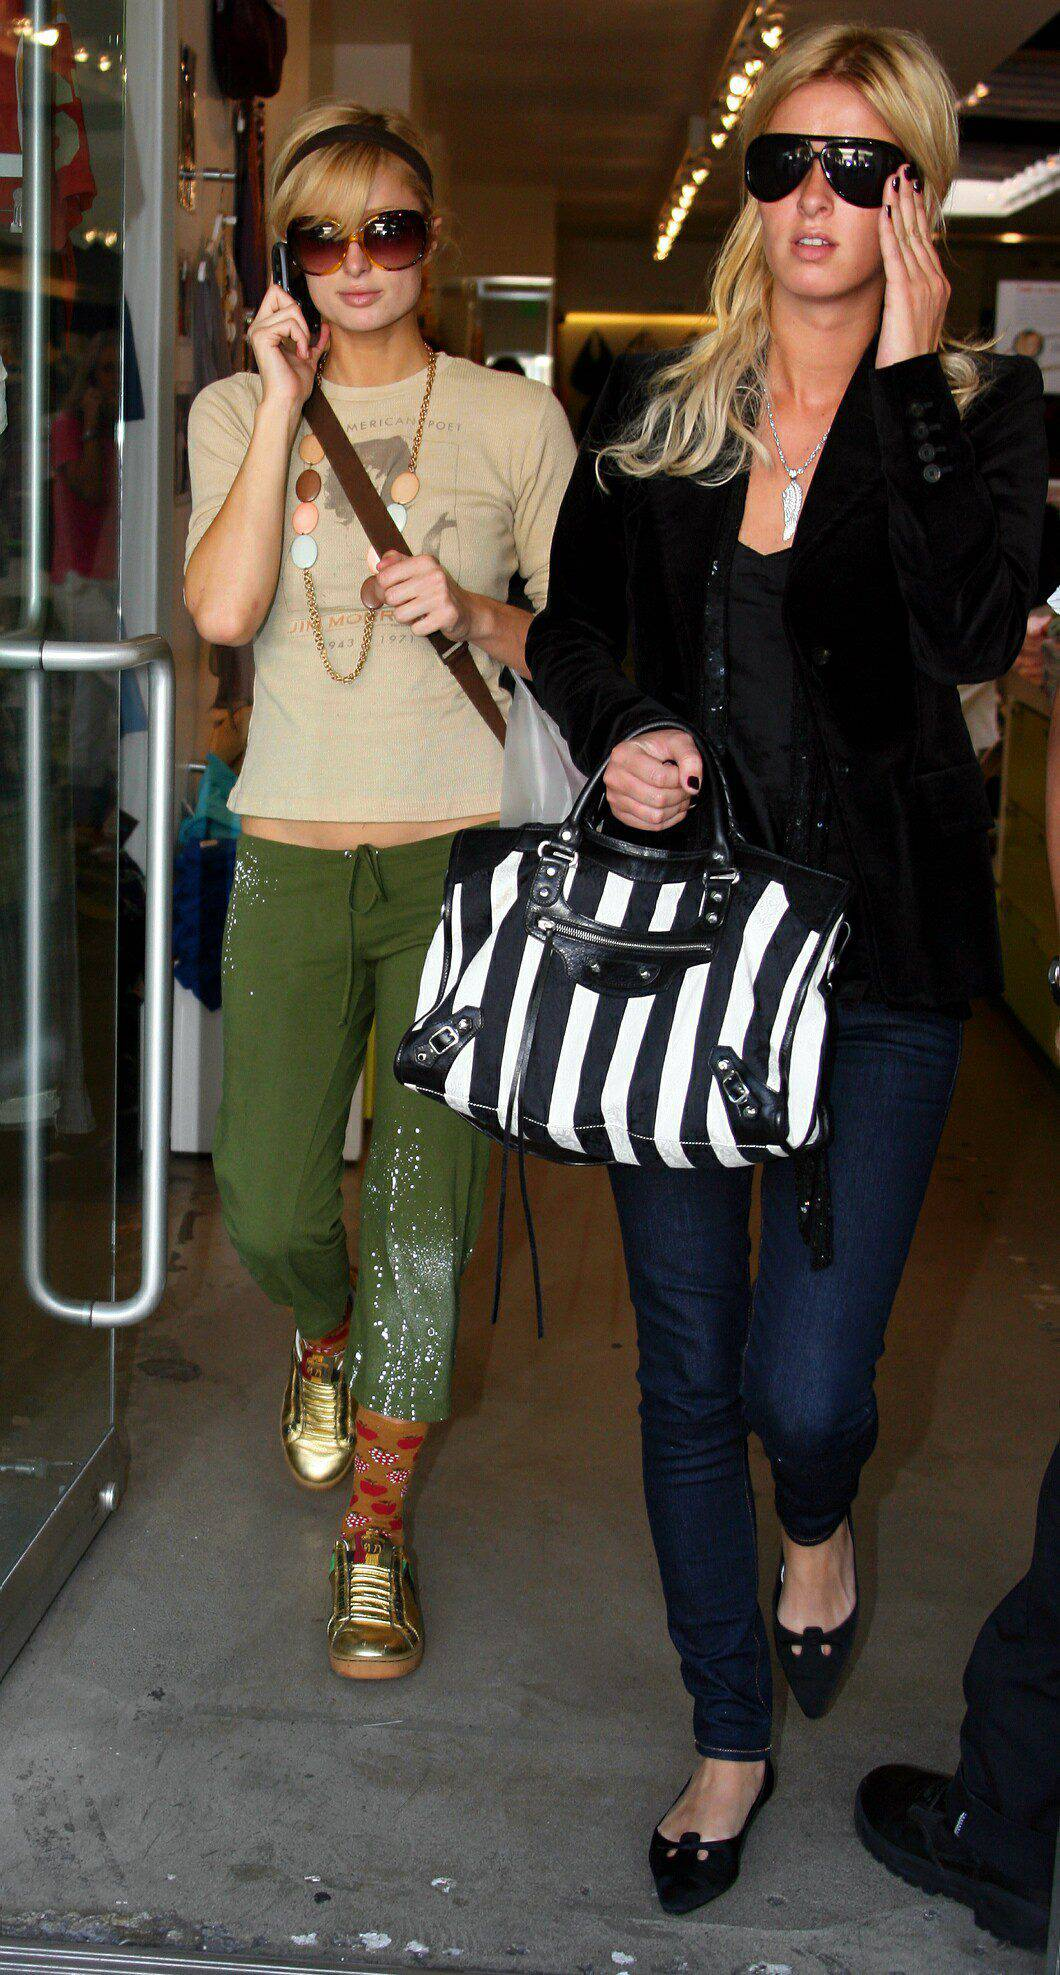 07422_Paris_and_Nicky_Hilton_shopping_at_Kitson_in_Los_Angeles_03.jpg